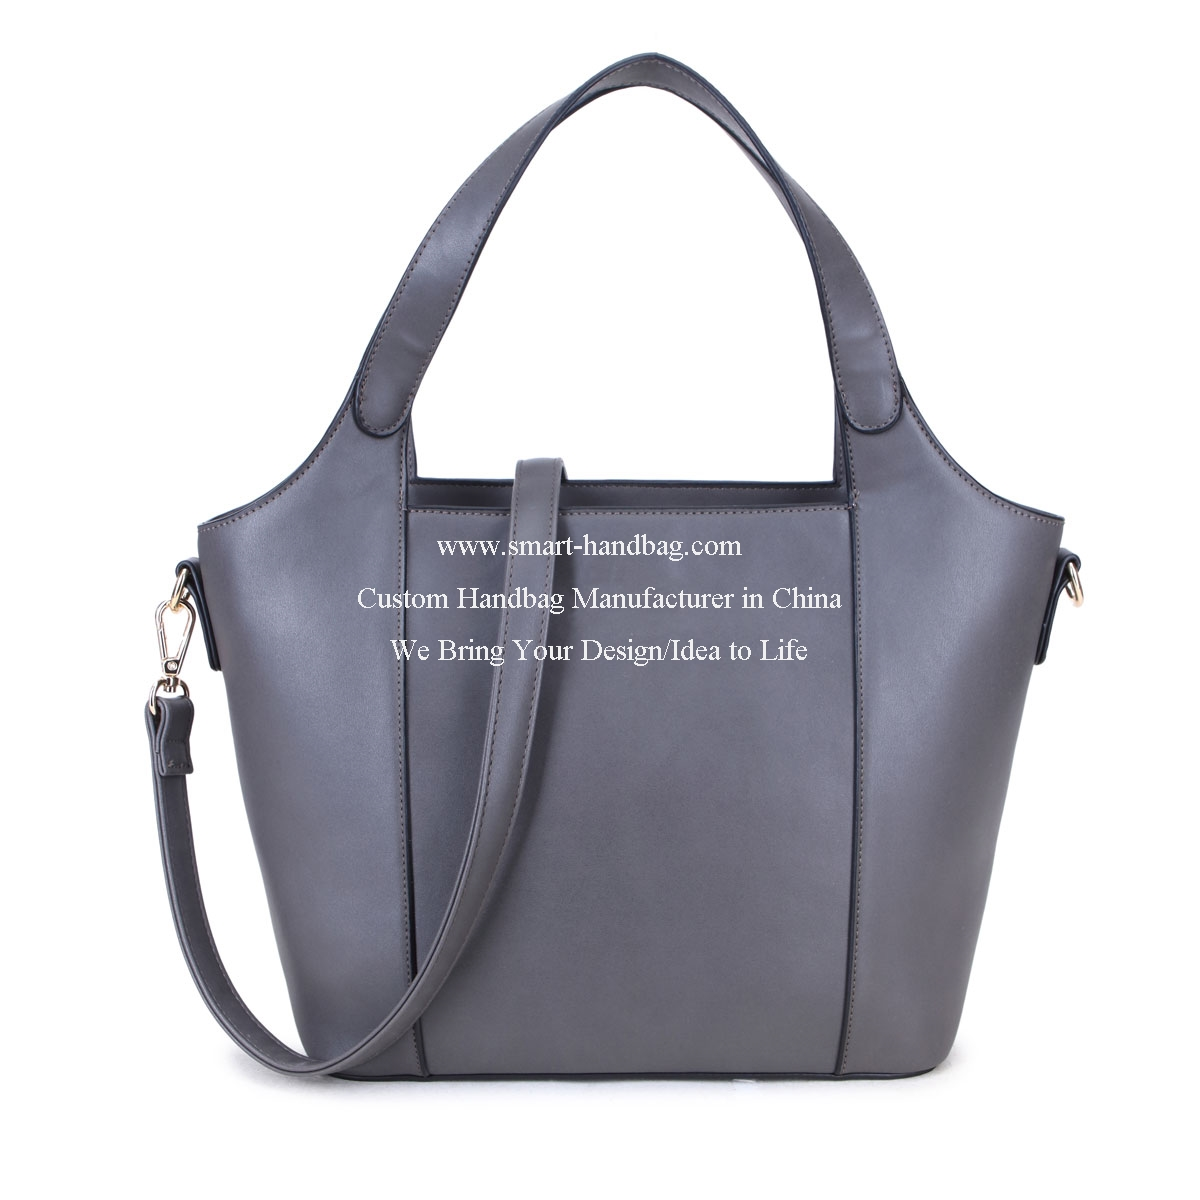 Finding the Difference B/W Hobo, Satchel & Tote by Leading Hobo Bags Suppliers